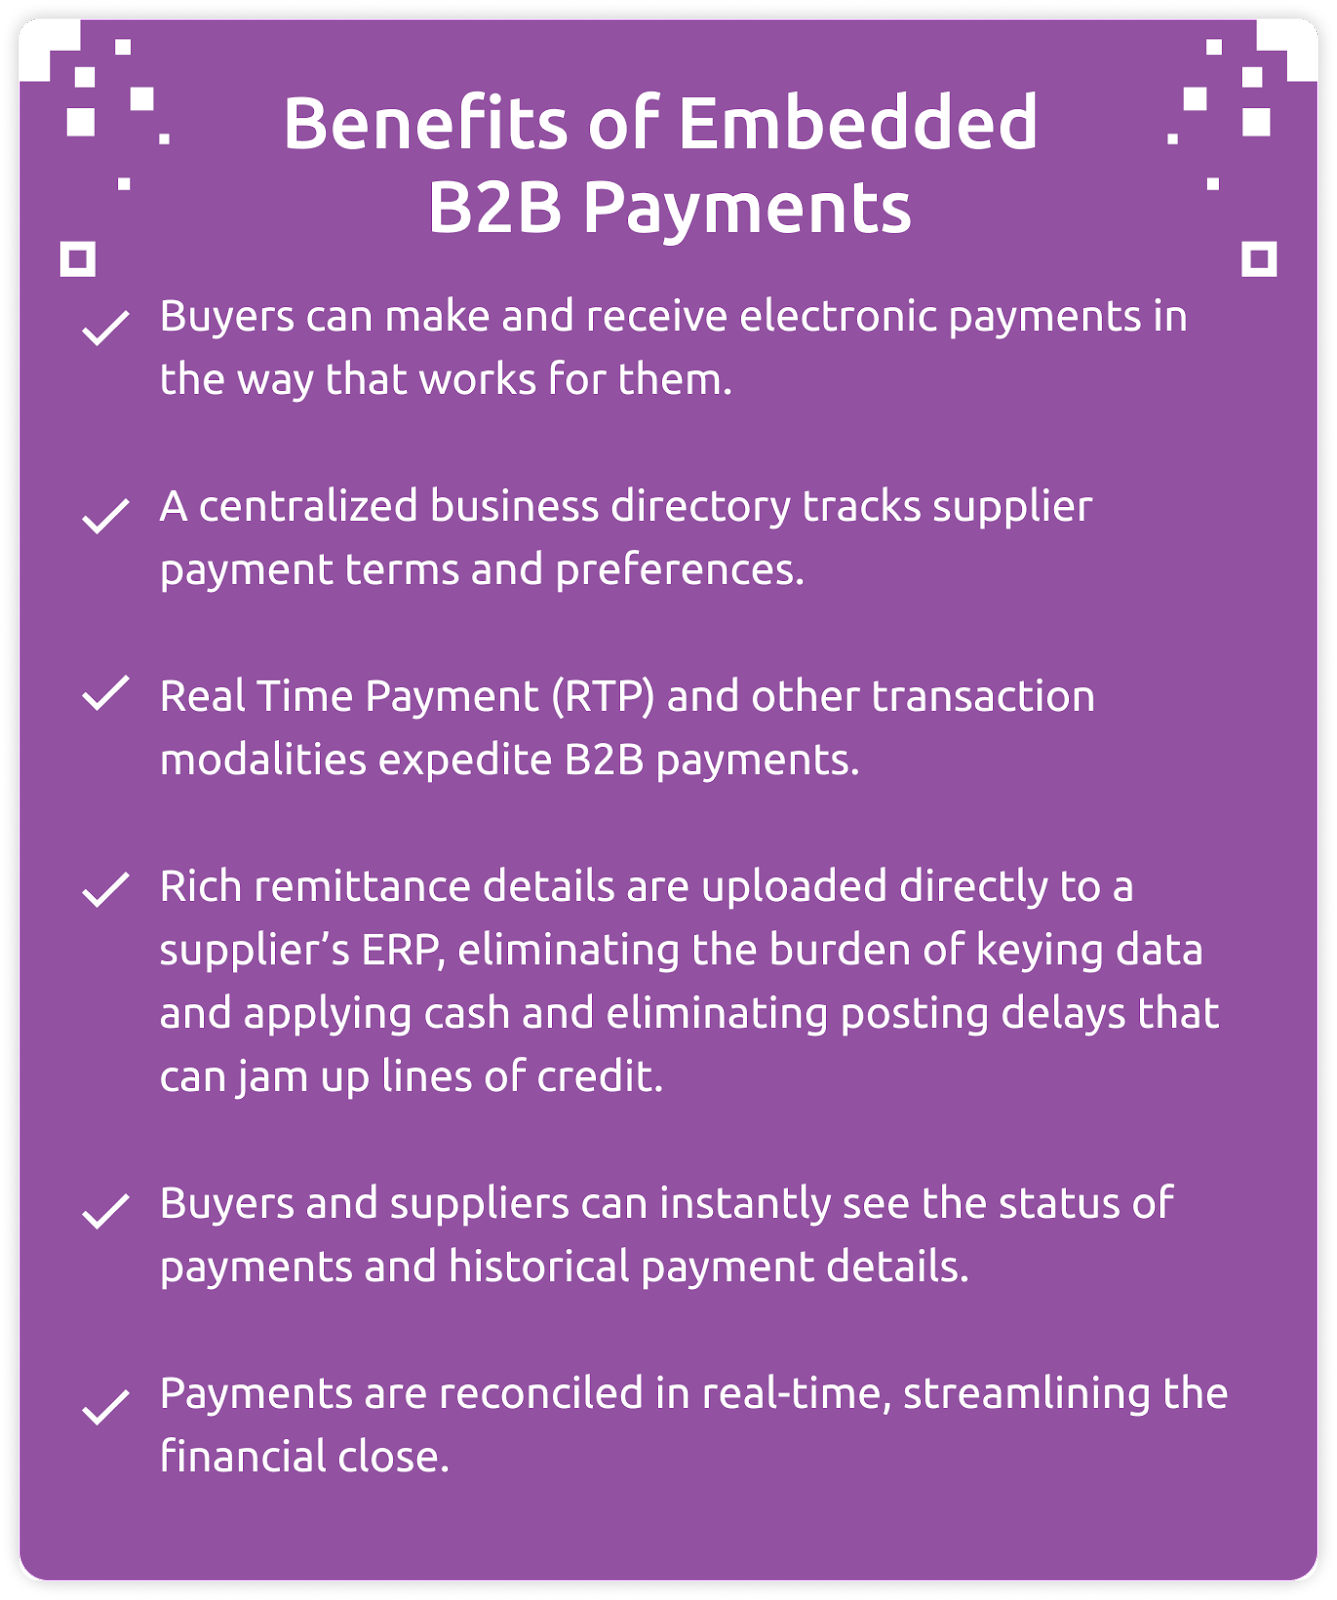 benefits of embedded b2b payments